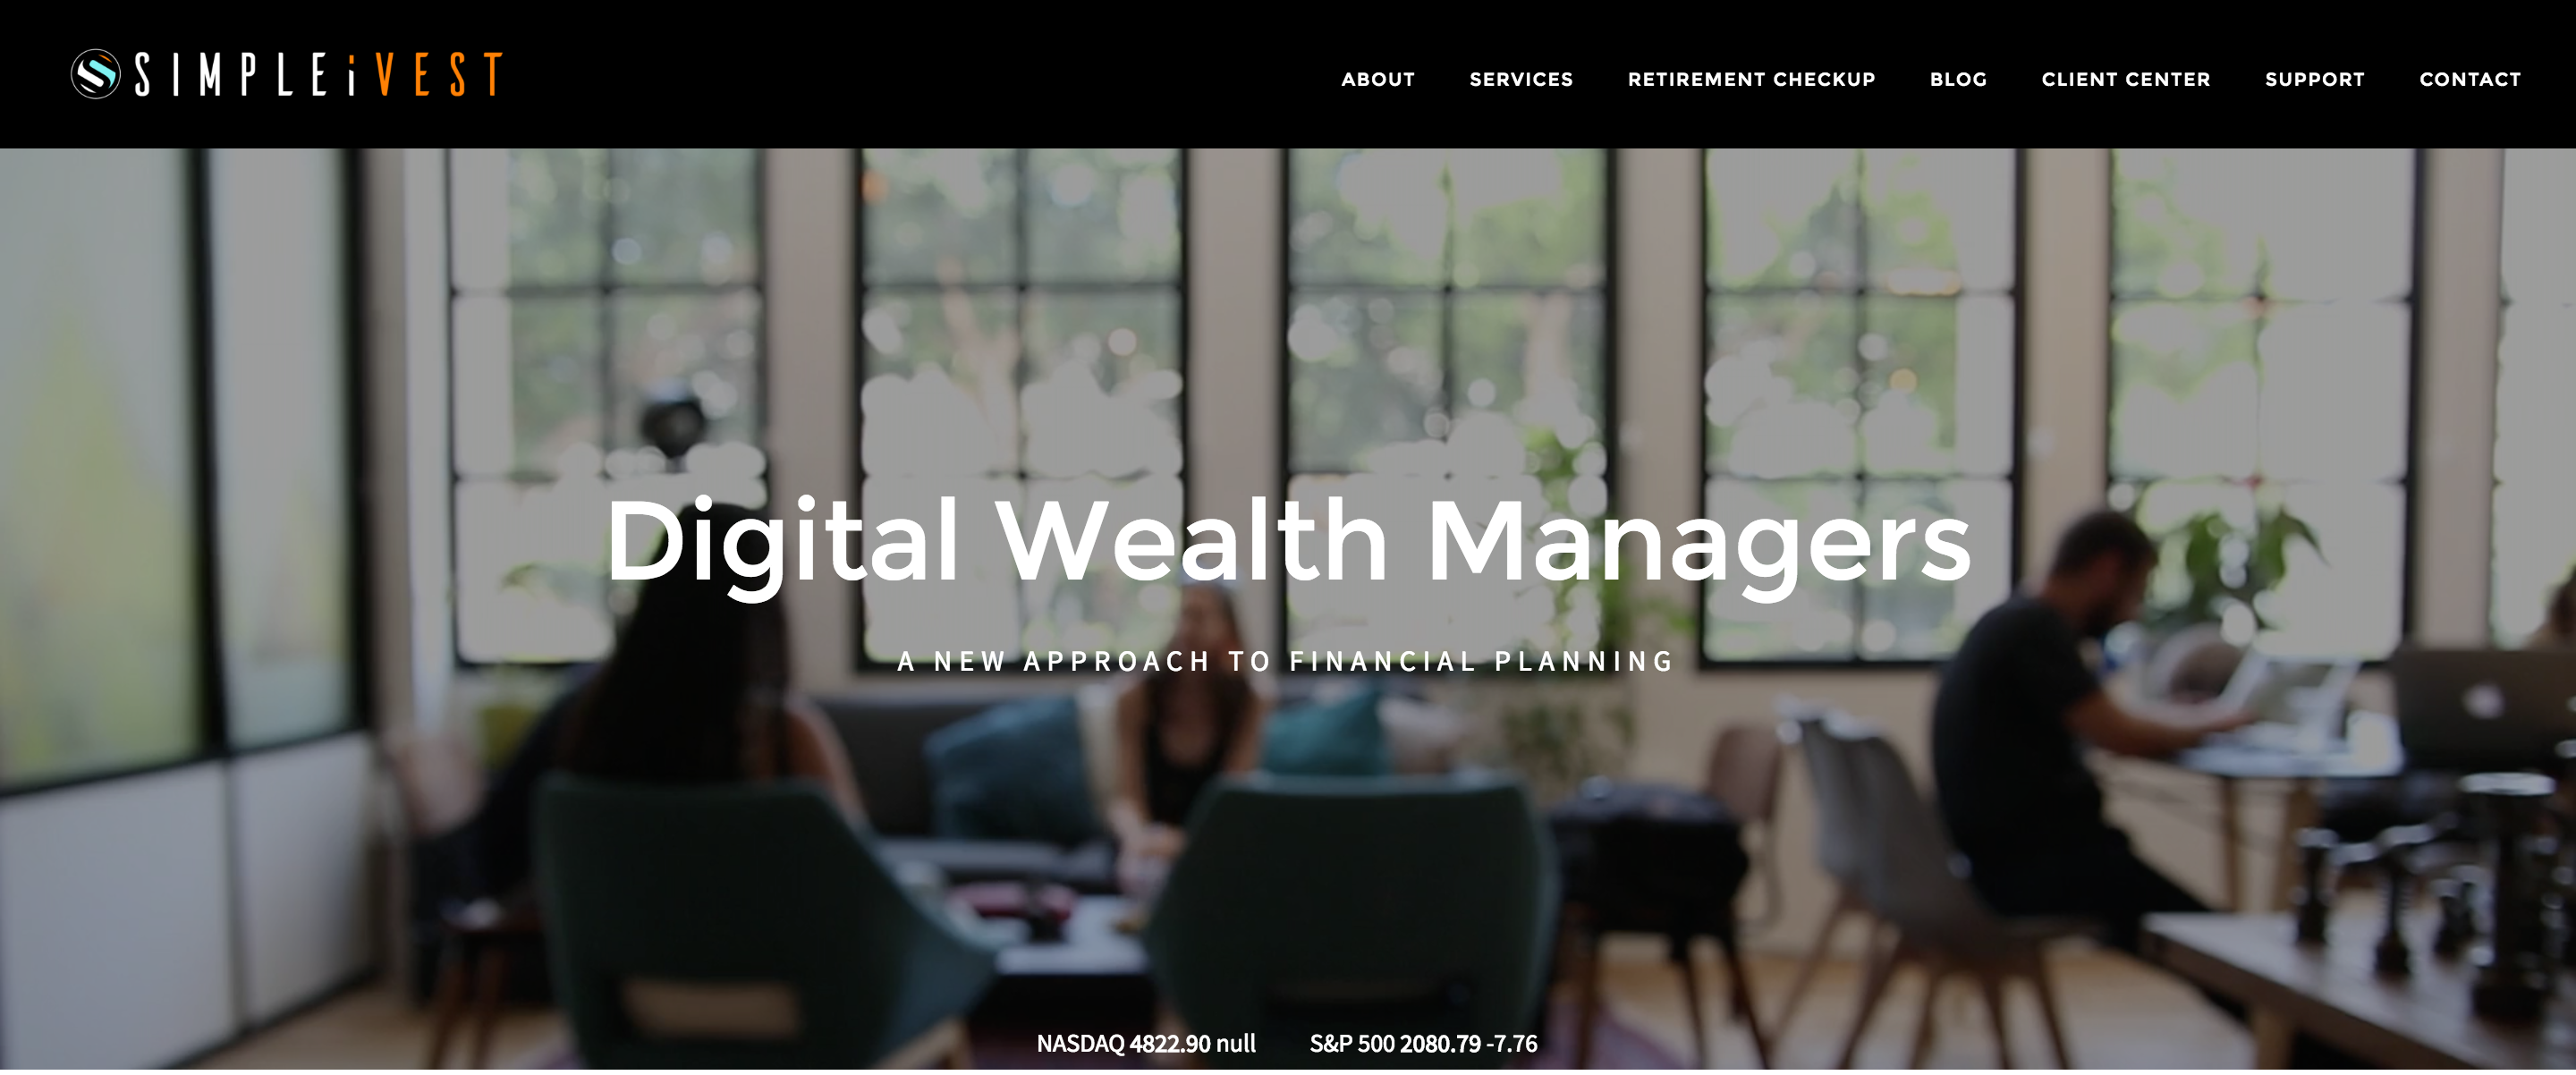 Financial advisor Website: SimpleiVest